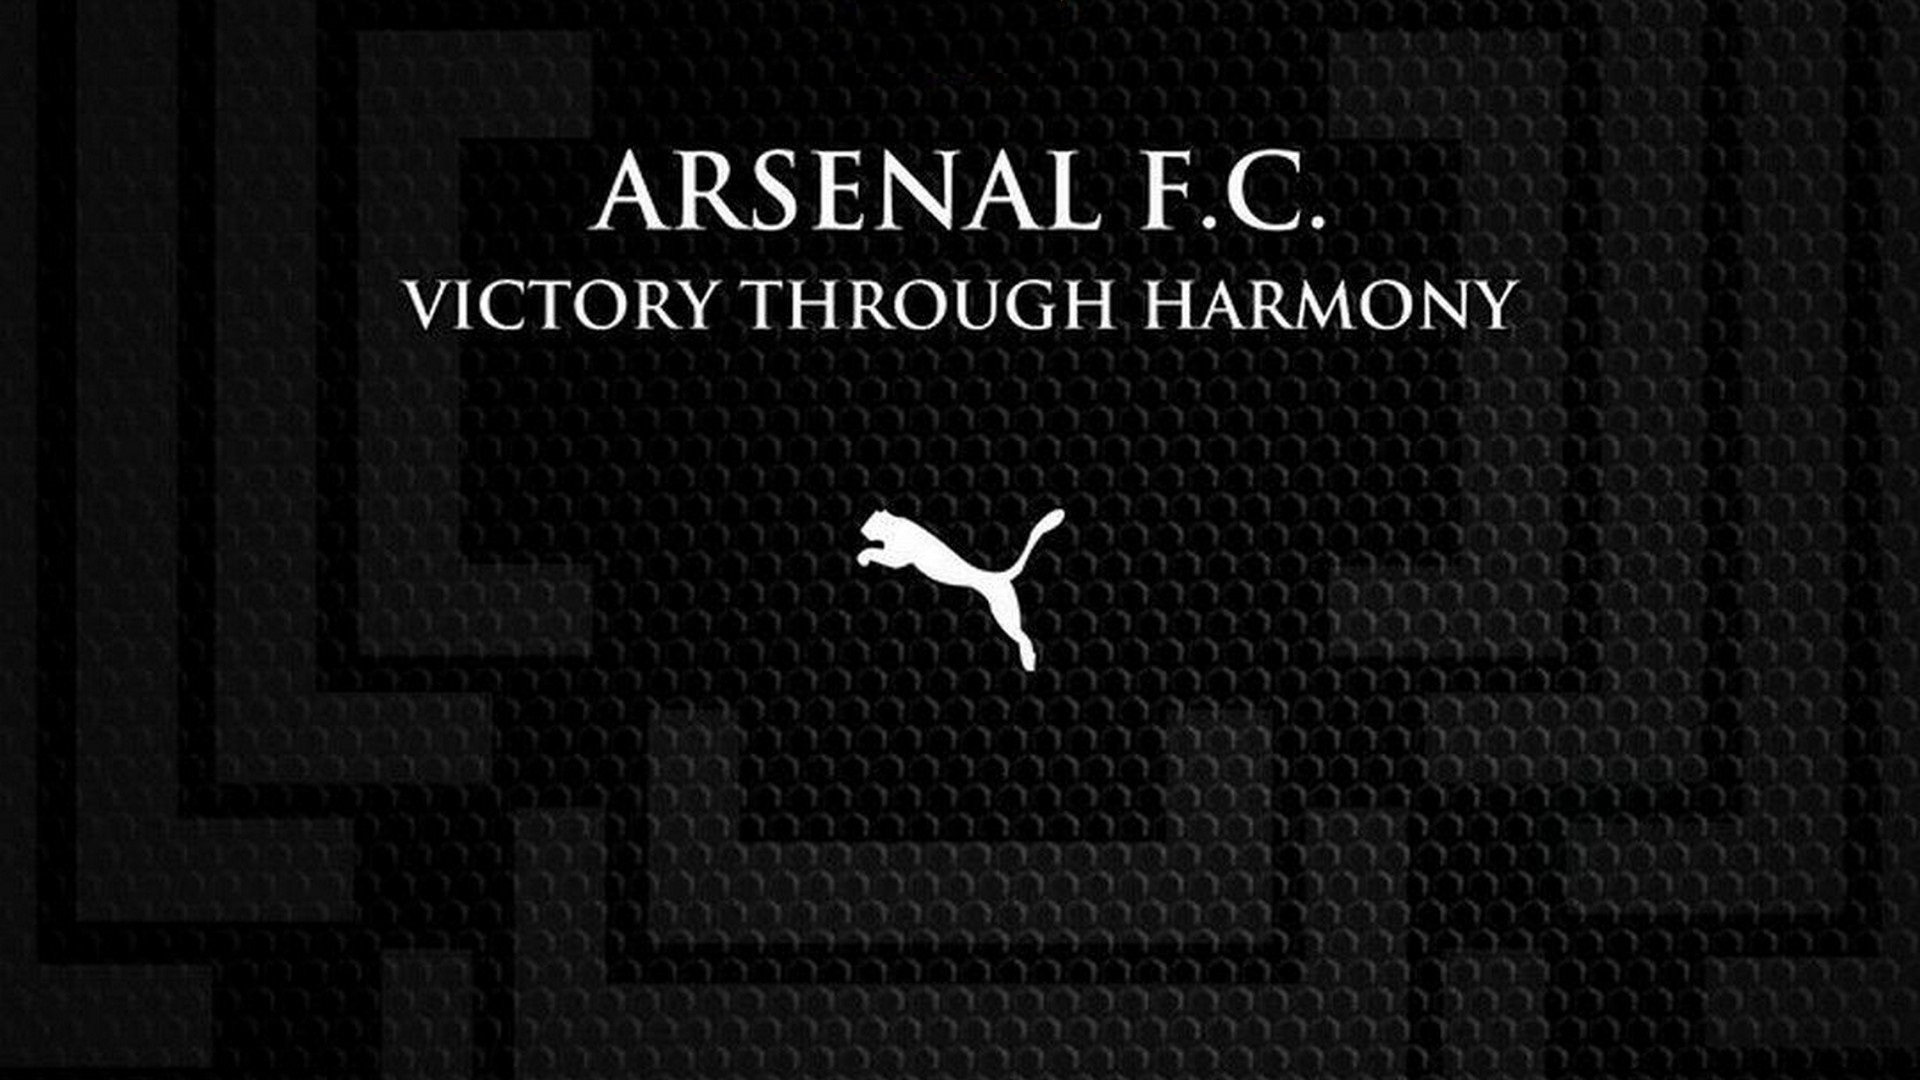 arsenal fc wallpaper for mac 2021